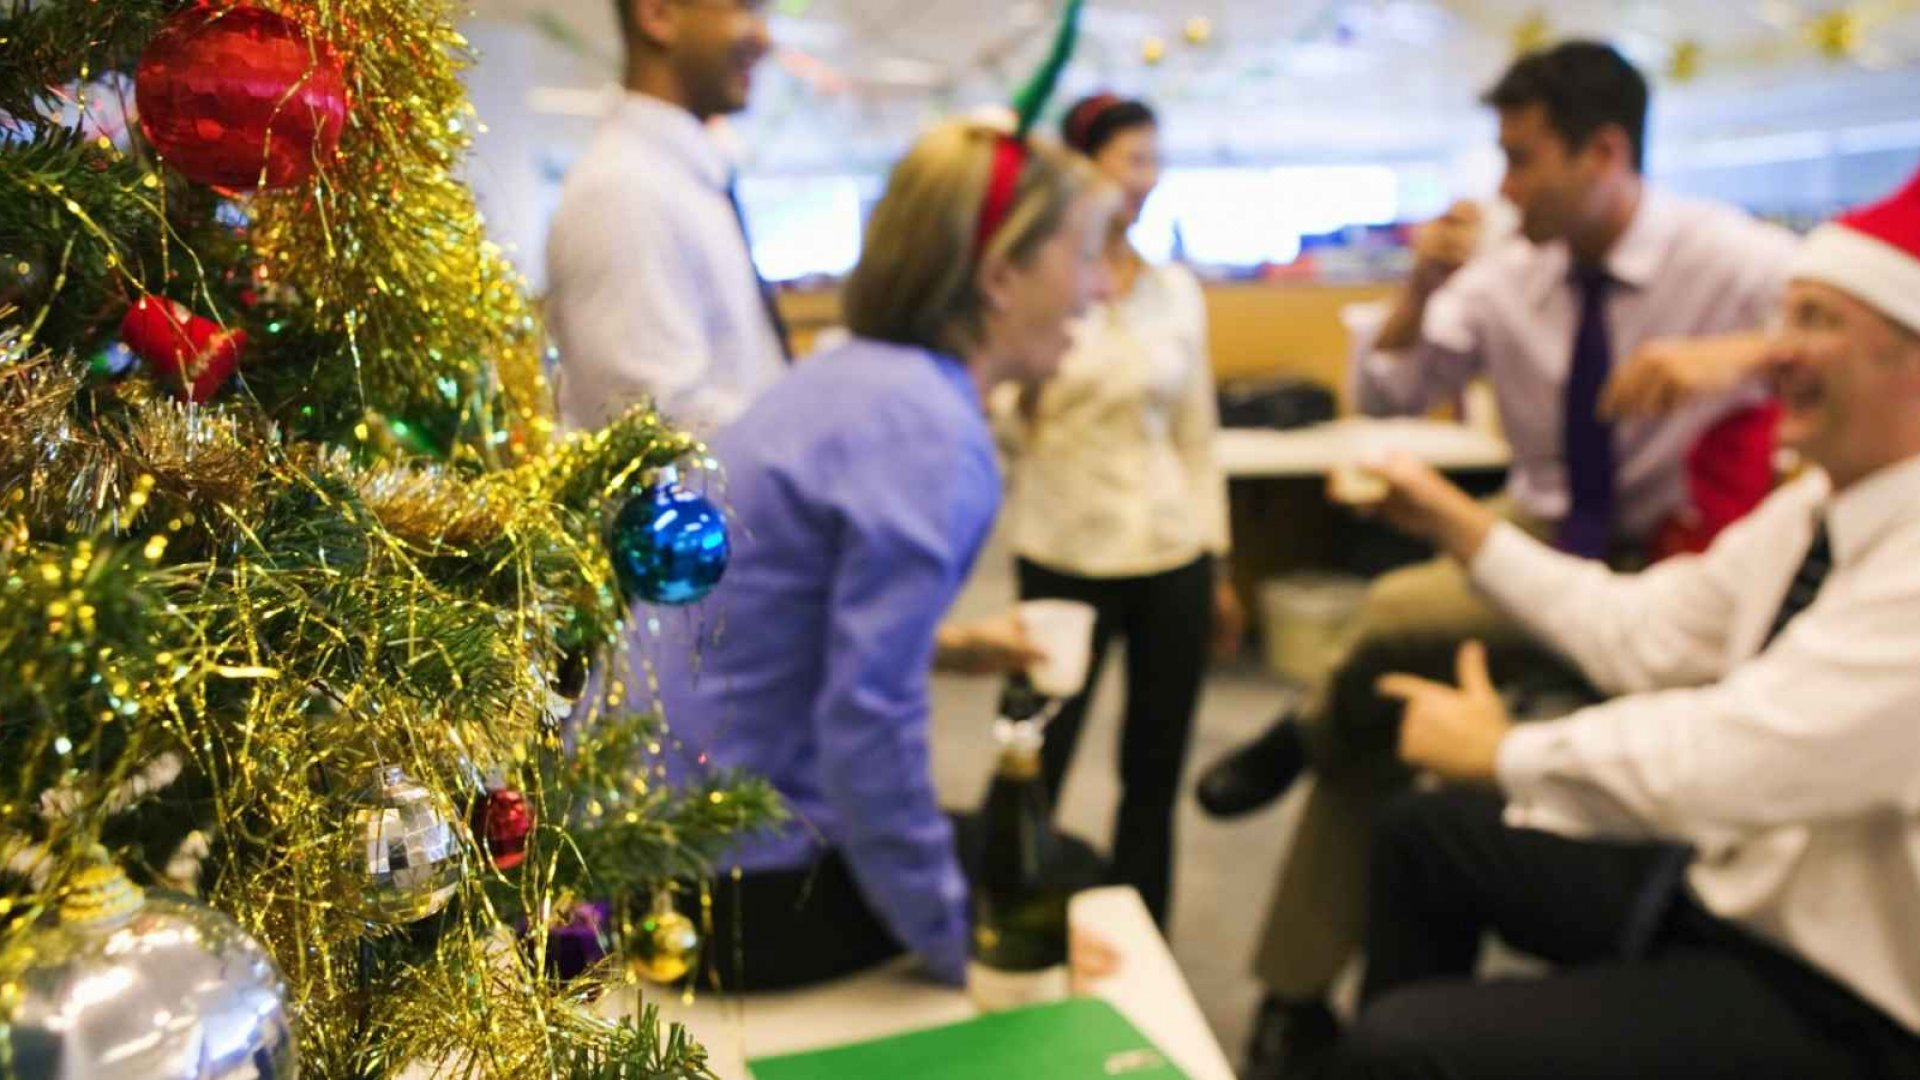 Having fun in the office during and after the holidays